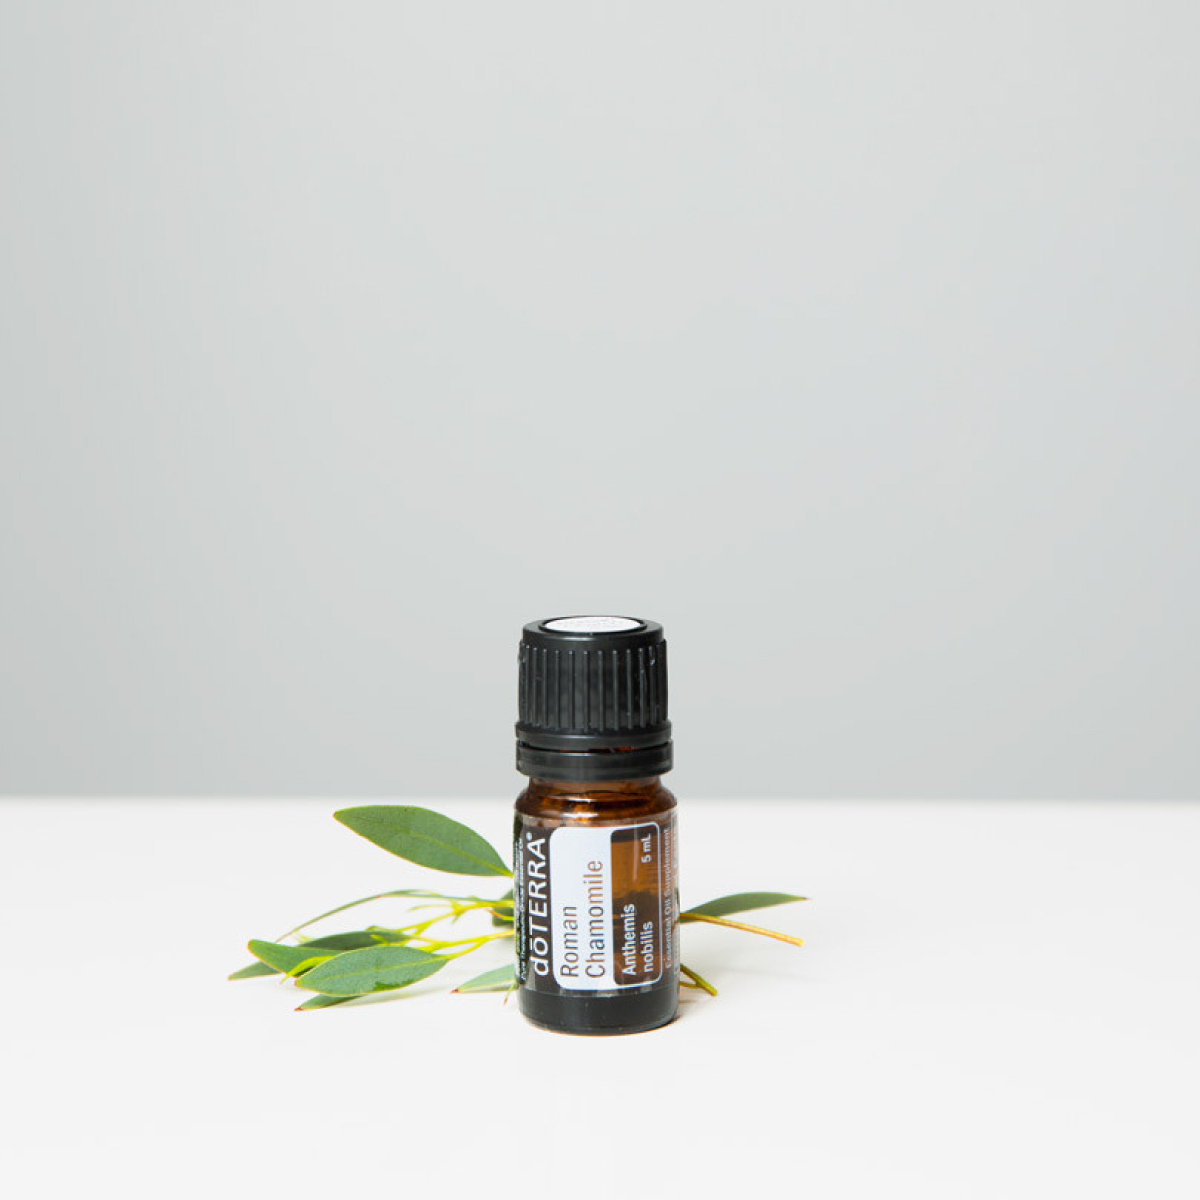 Bottle of Roman Chamomile oil in a small, white dish, surrounded by fresh green leaves on a wooden surface. How do you use Roman Chamomile essential oil for sleep? You can use Roman Chamomile oil for sleep by rubbing it on the bottoms of your feet or adding it to a bath before bed.